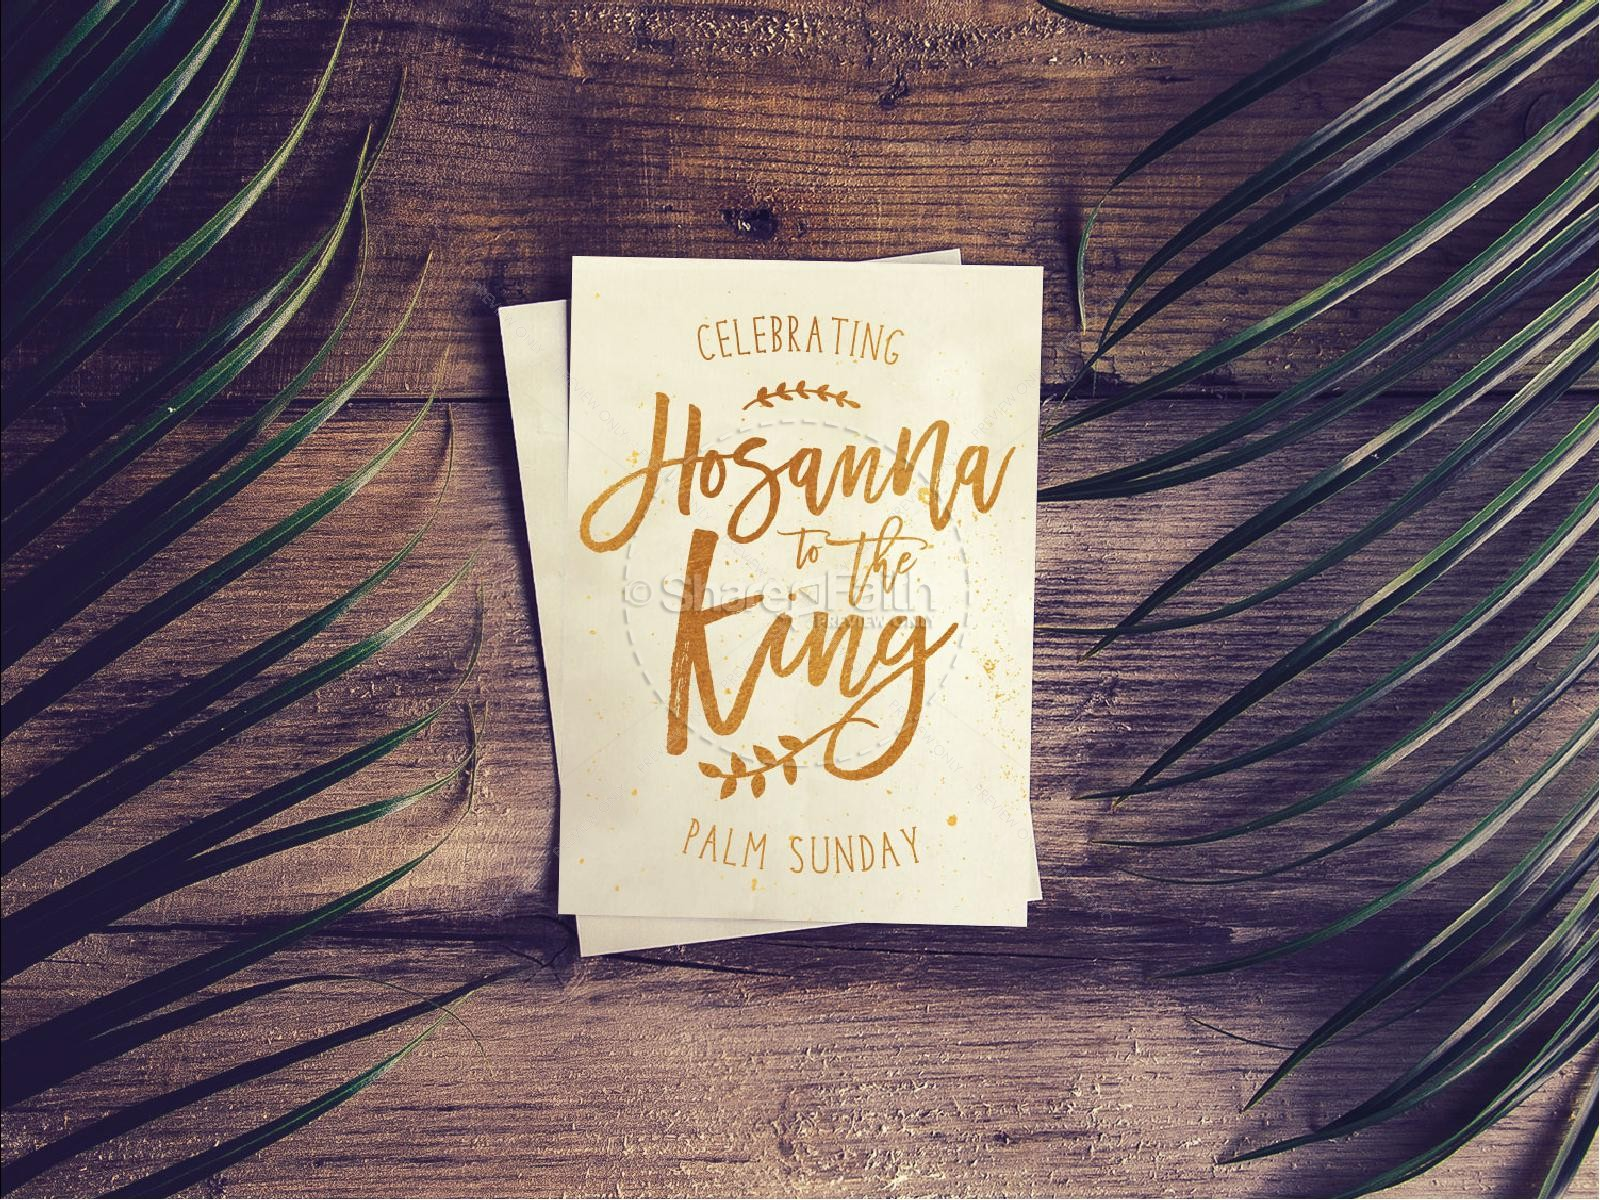 Palm Sunday Hosanna Sermon PowerPoint